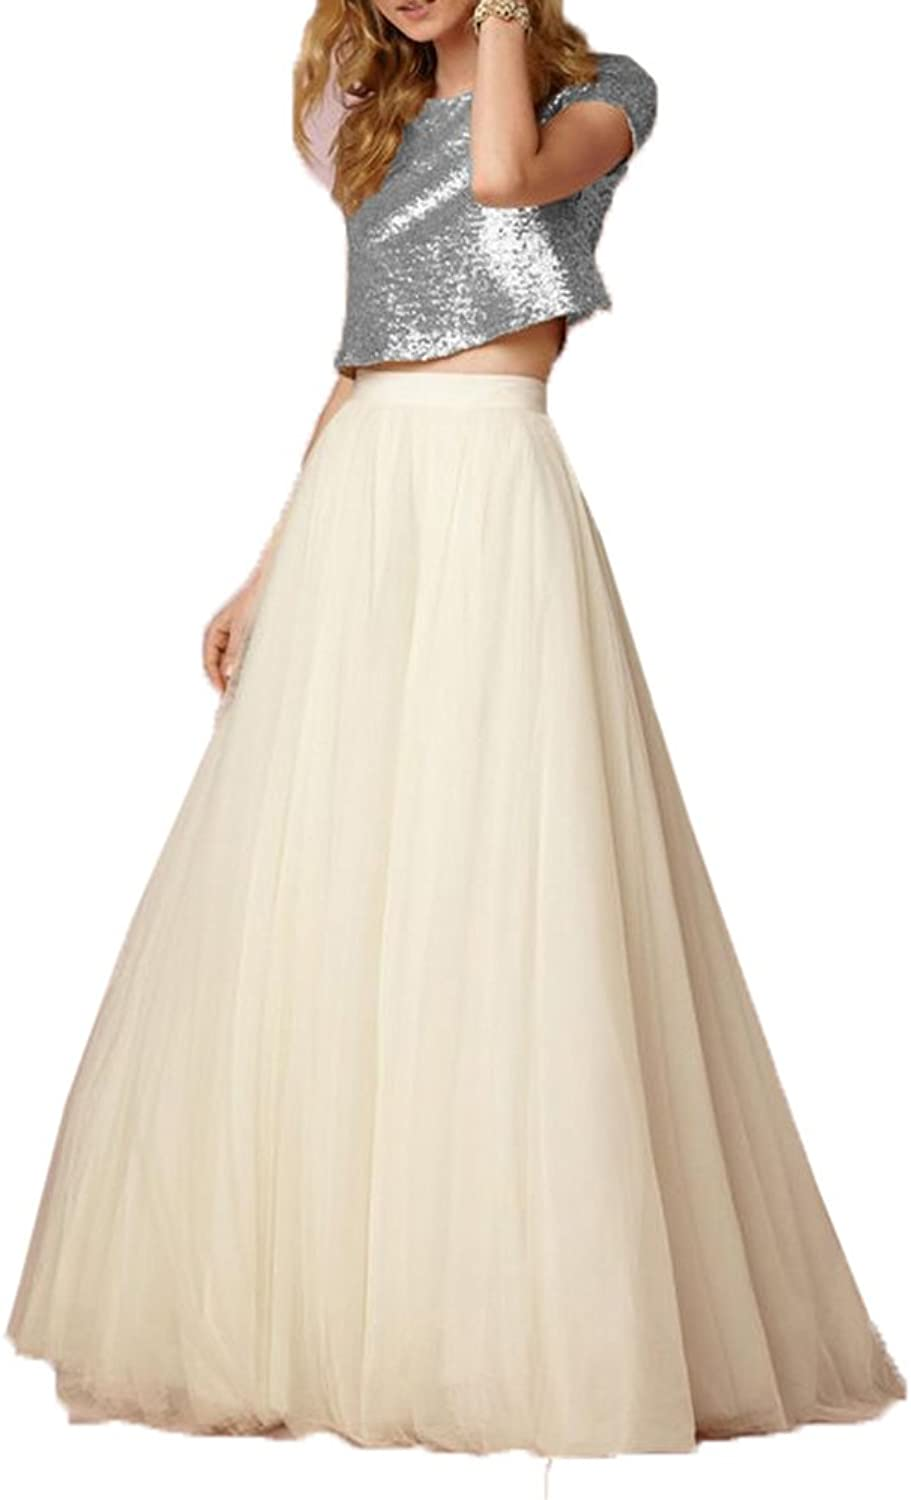 Honey Qiao pink gold Bridesmaid Dresses Short Sleeves Two Pieces Sequins Tank Tulle Skirt